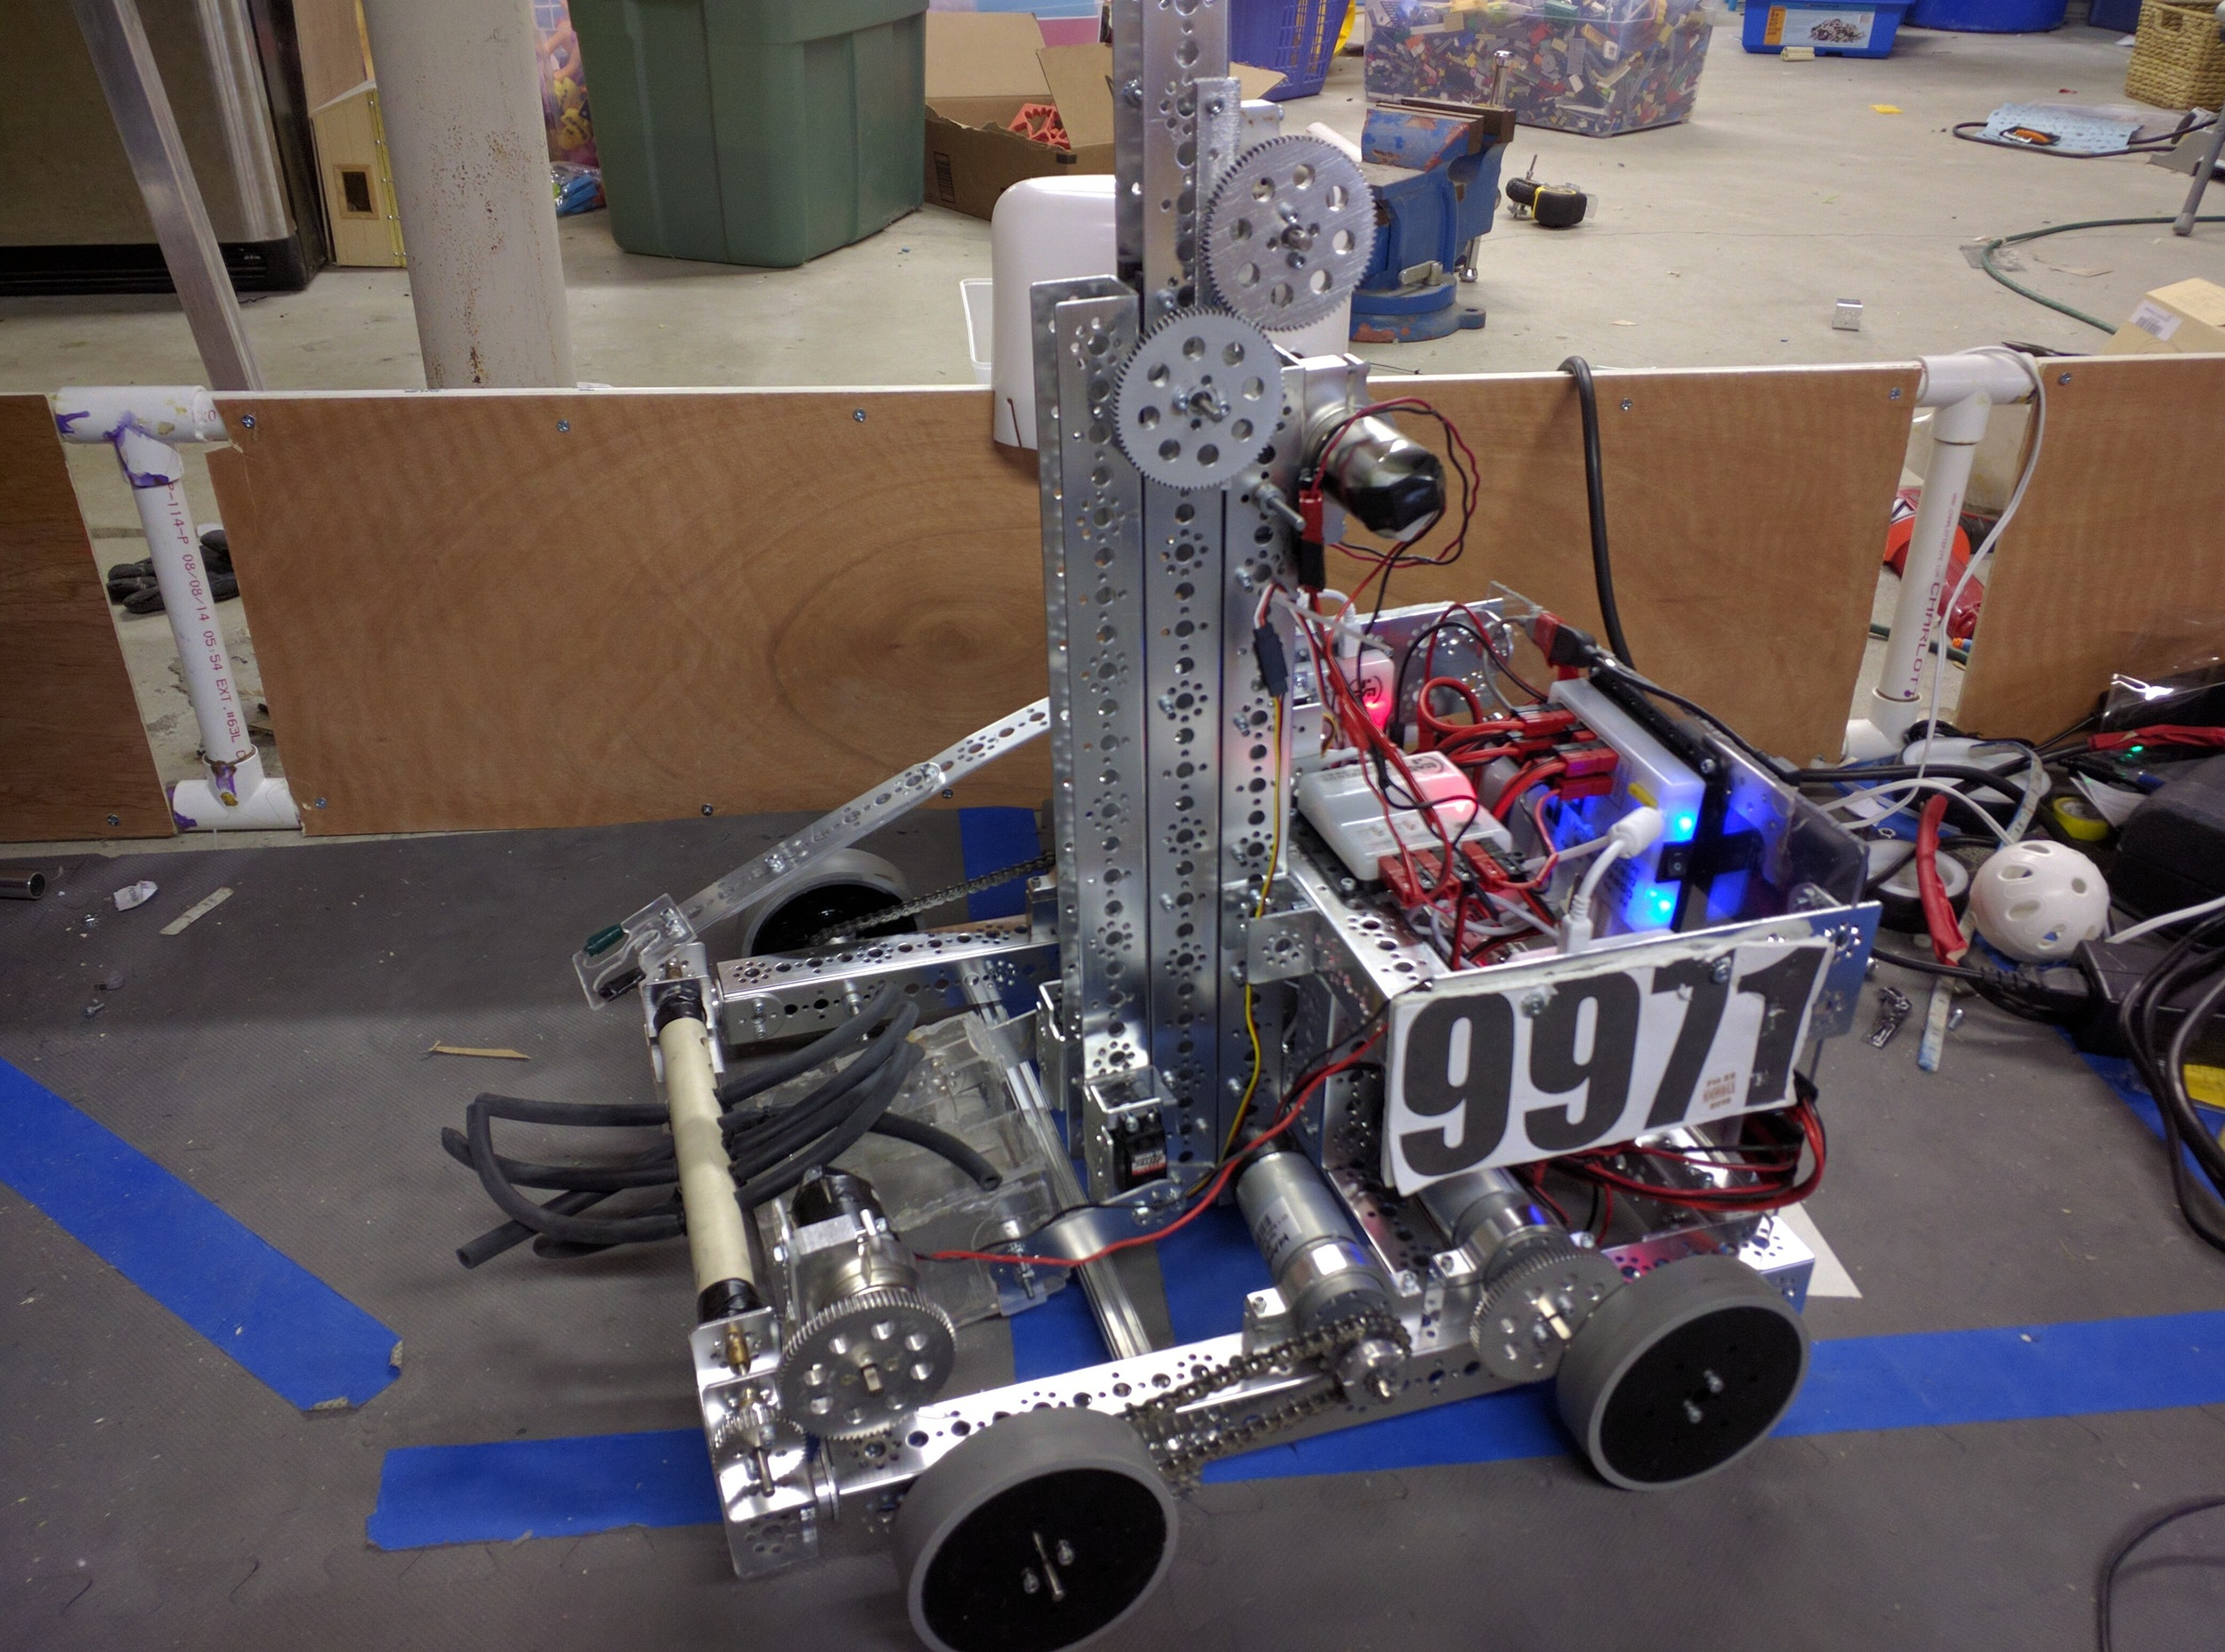 """This robot was designed specifically for the """"Flashback to the Future"""" off-season scrimmage that was on May 22nd, 2016. We decided to call it """"Throwback""""because we had a throwback to Block Party and based it off of some of the old Block Party bots.The reason we modeled it after old Block Party robots was because that since this was an off-season scrimmage they were using a modified RES-Q field but with elements from every past game (hence the name """"Flashback to the Future""""). When we read the rules for the modified game, we saw that scoring cubes into the Block Party pendulums was the most efficient and effective way to score points.Because of that we decided that it would be a fun off-season project would be to create a whole new robot for this scrimmage that was based on Block-Party designs."""